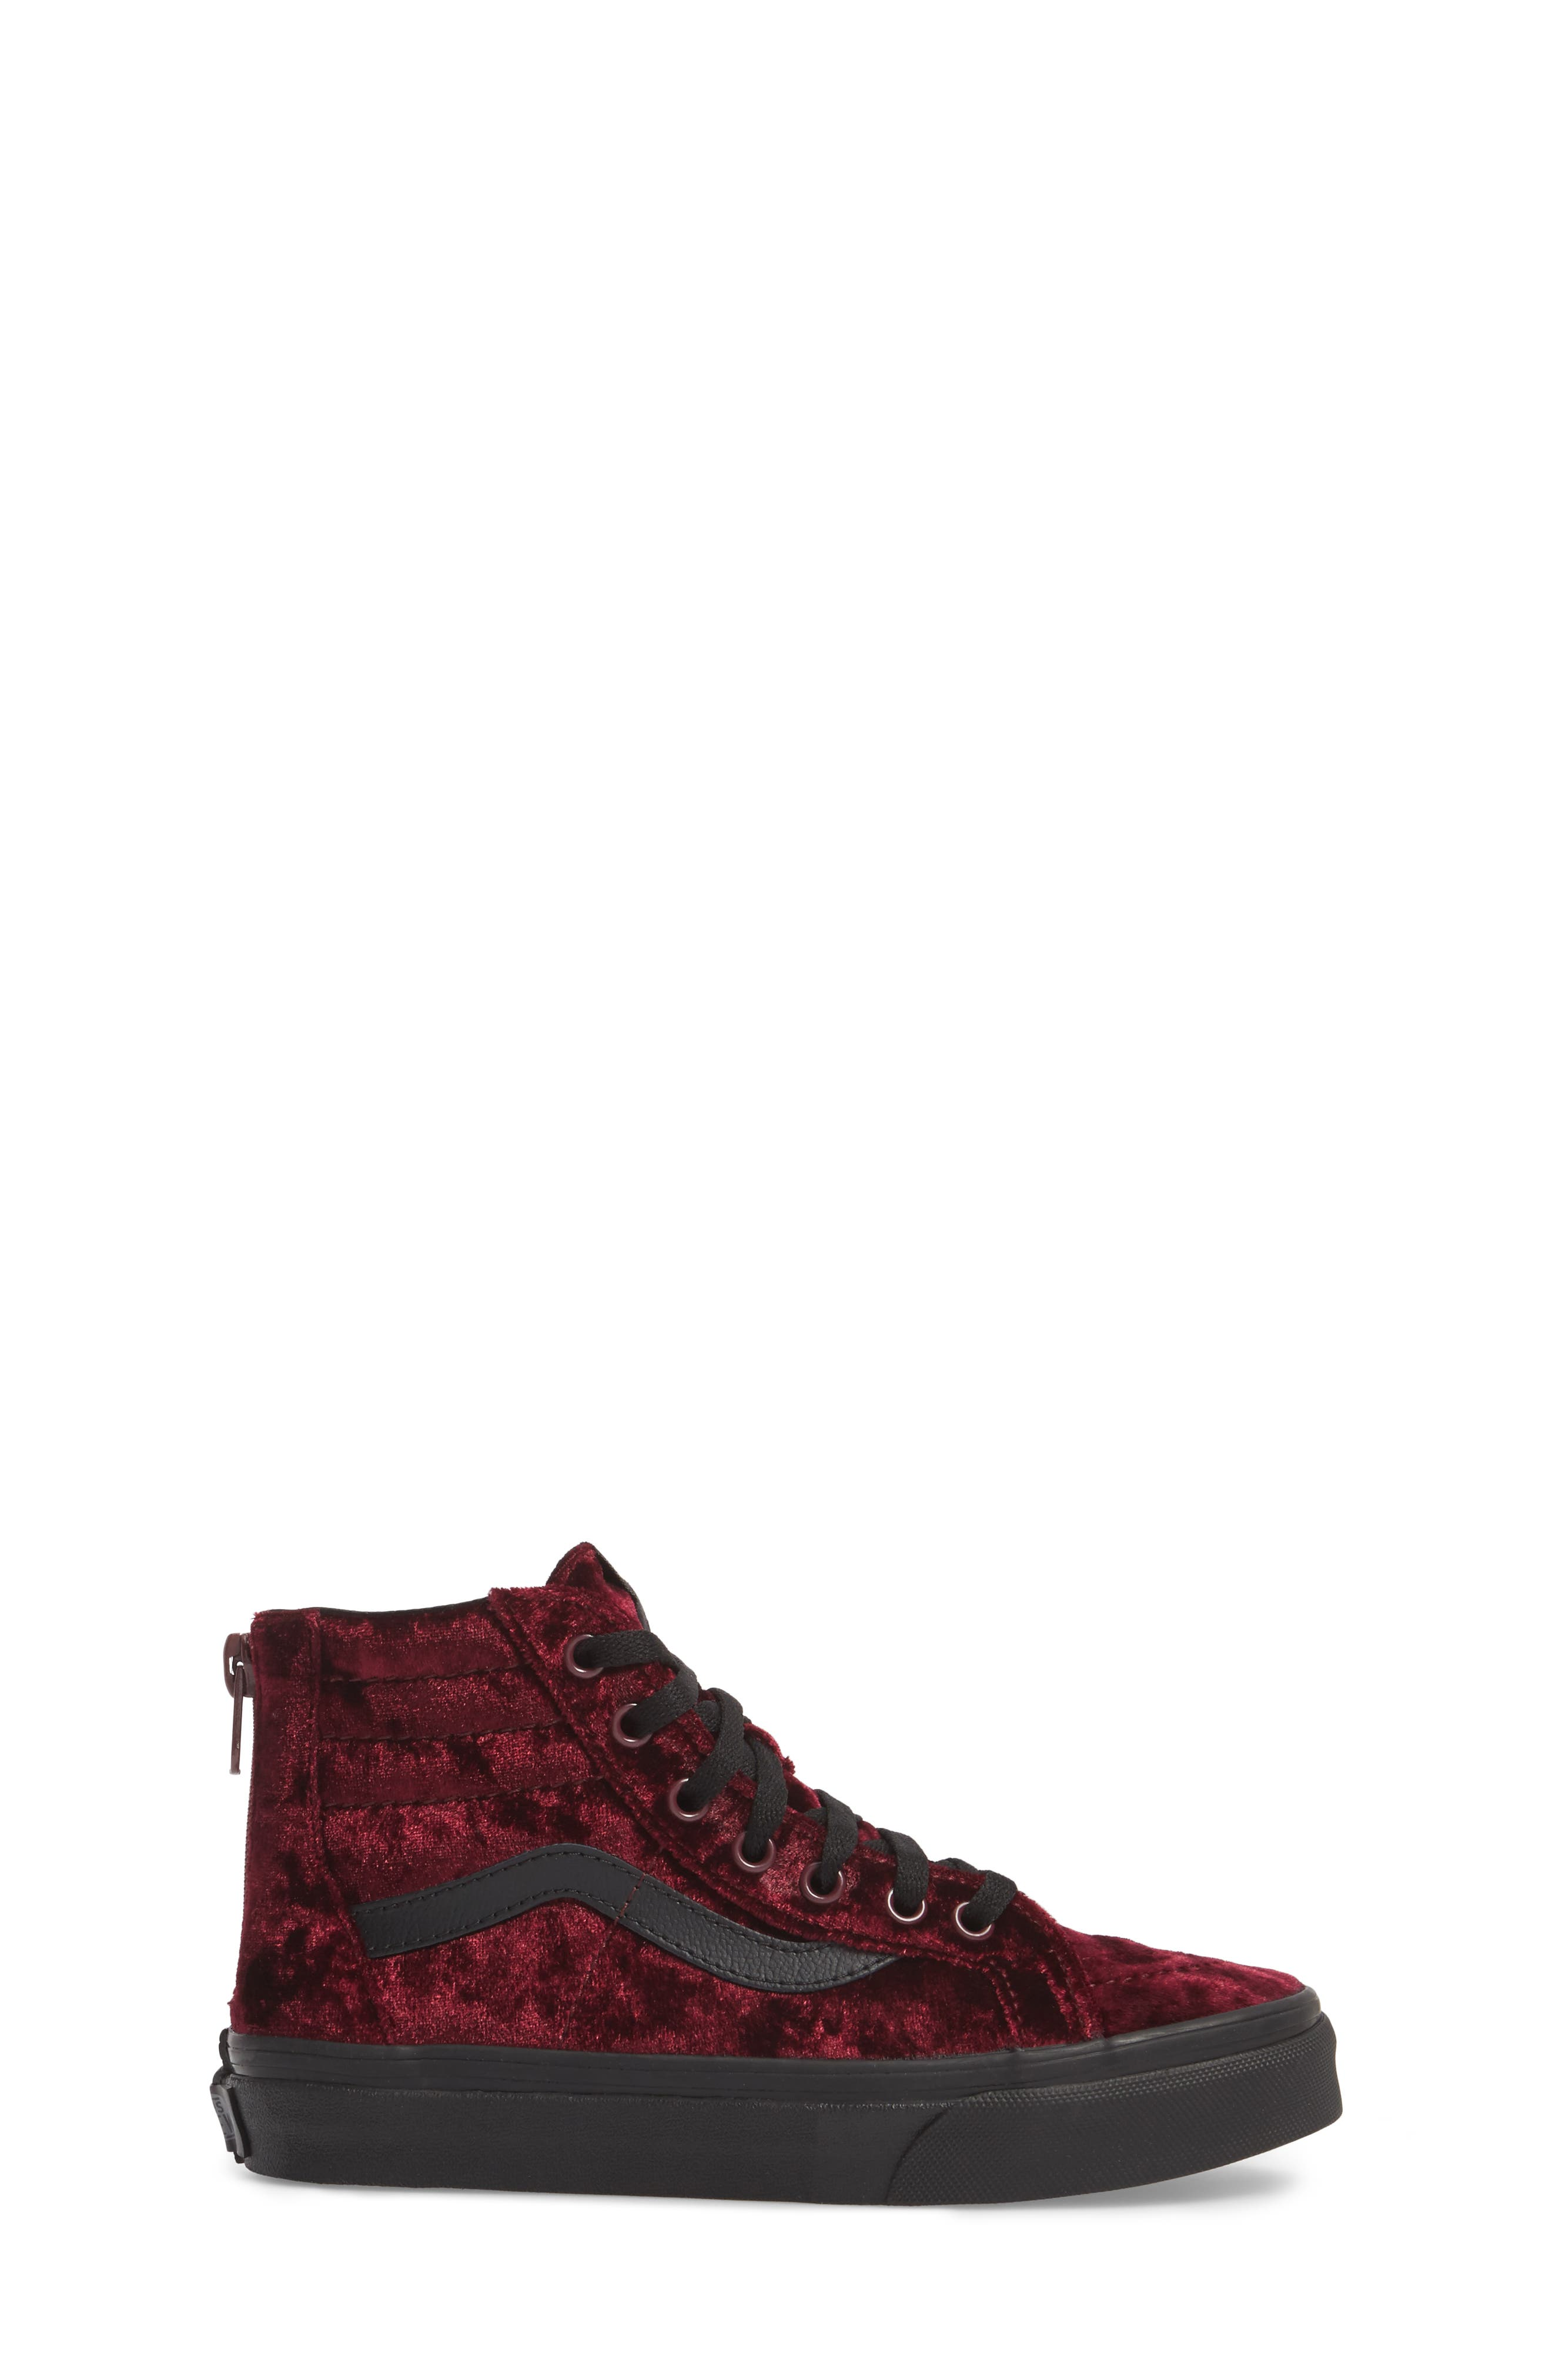 SK8-Hi Zip Sneaker,                             Alternate thumbnail 3, color,                             Red/ Black